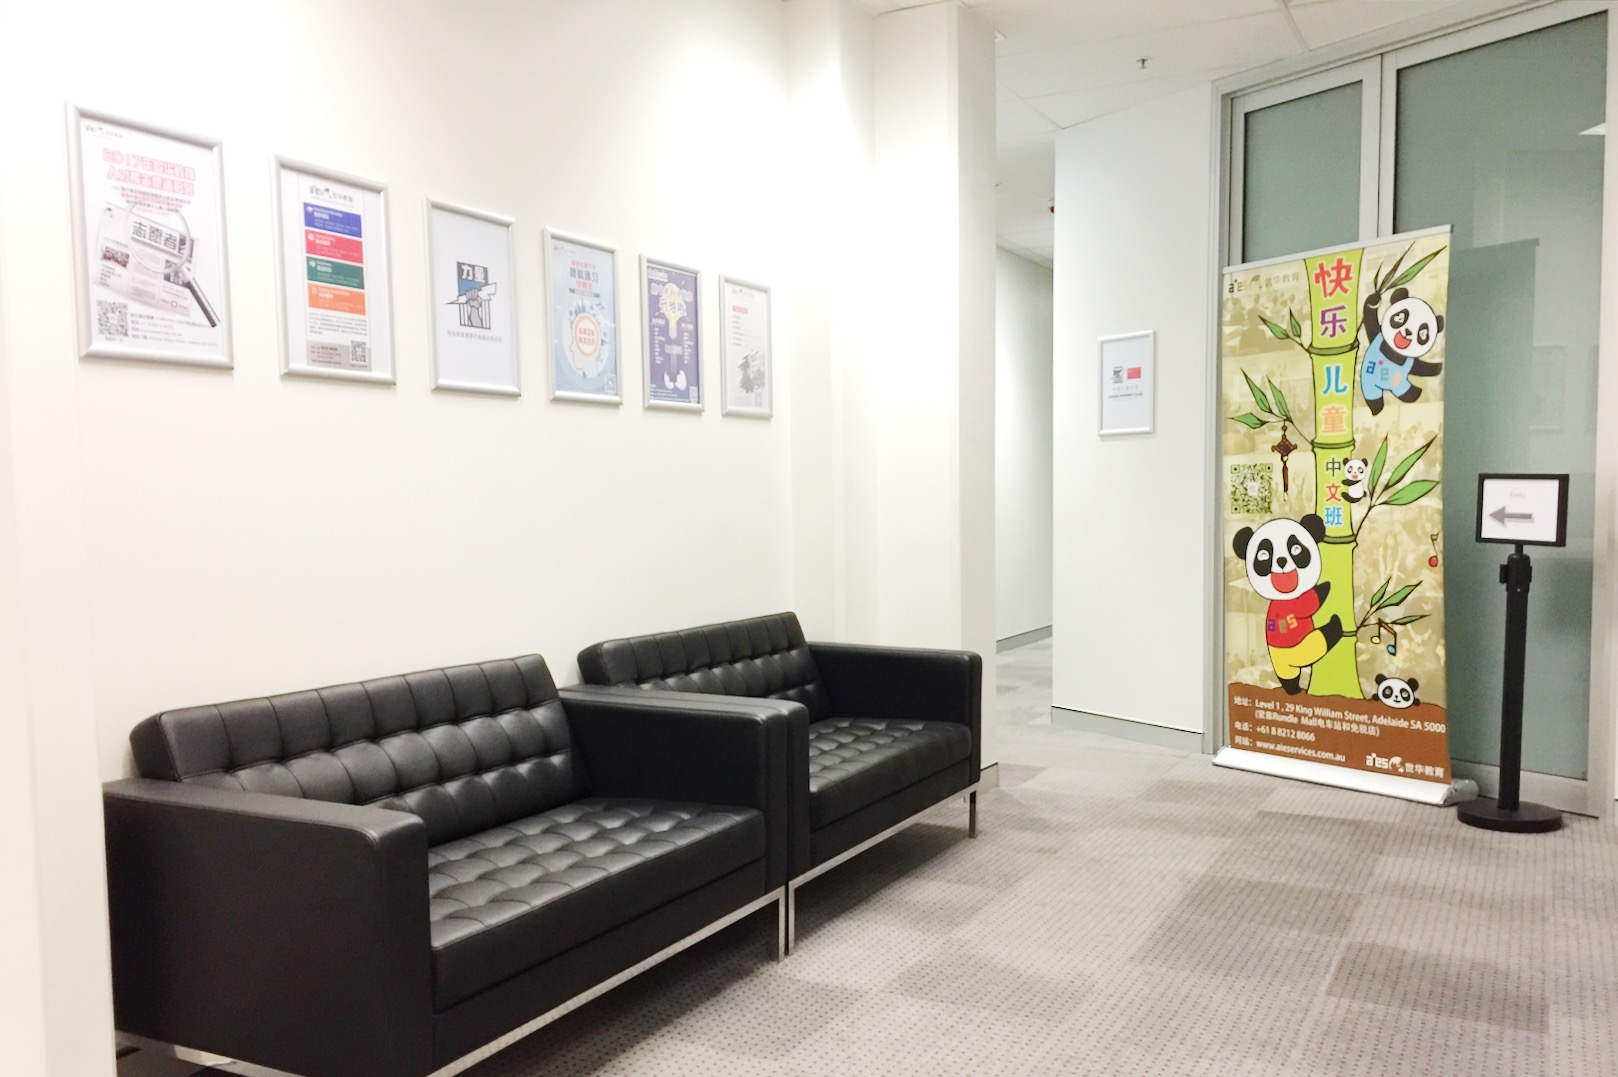 aies-training-room-entrance.jpg